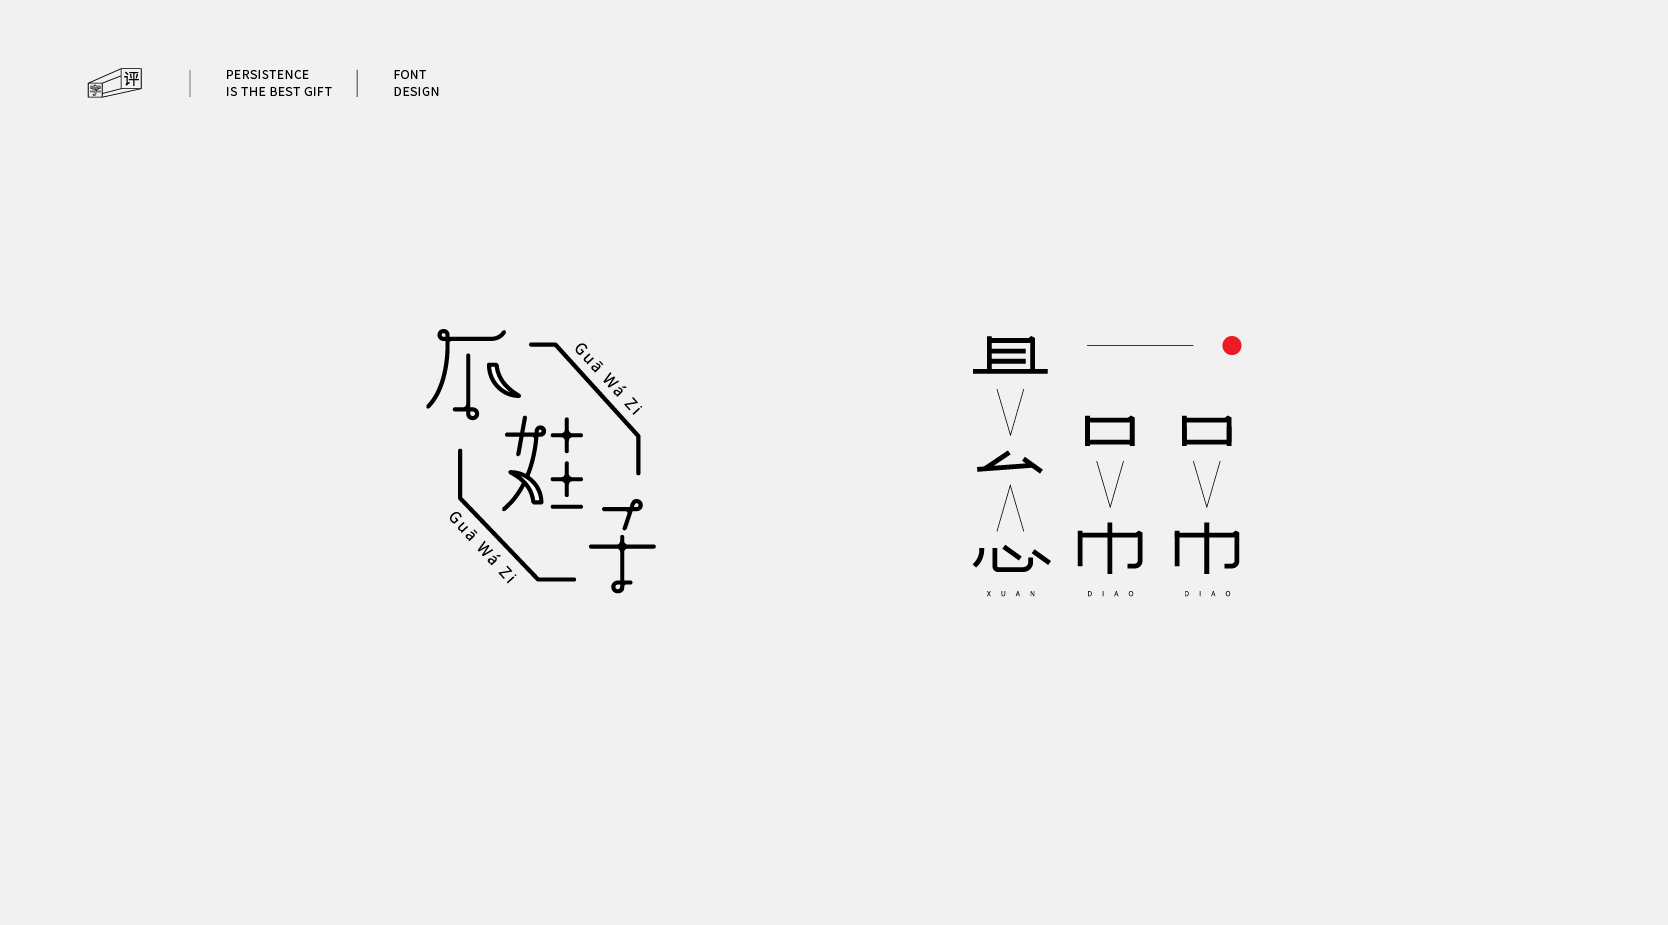 Five regional dialects, 200 sets of font design